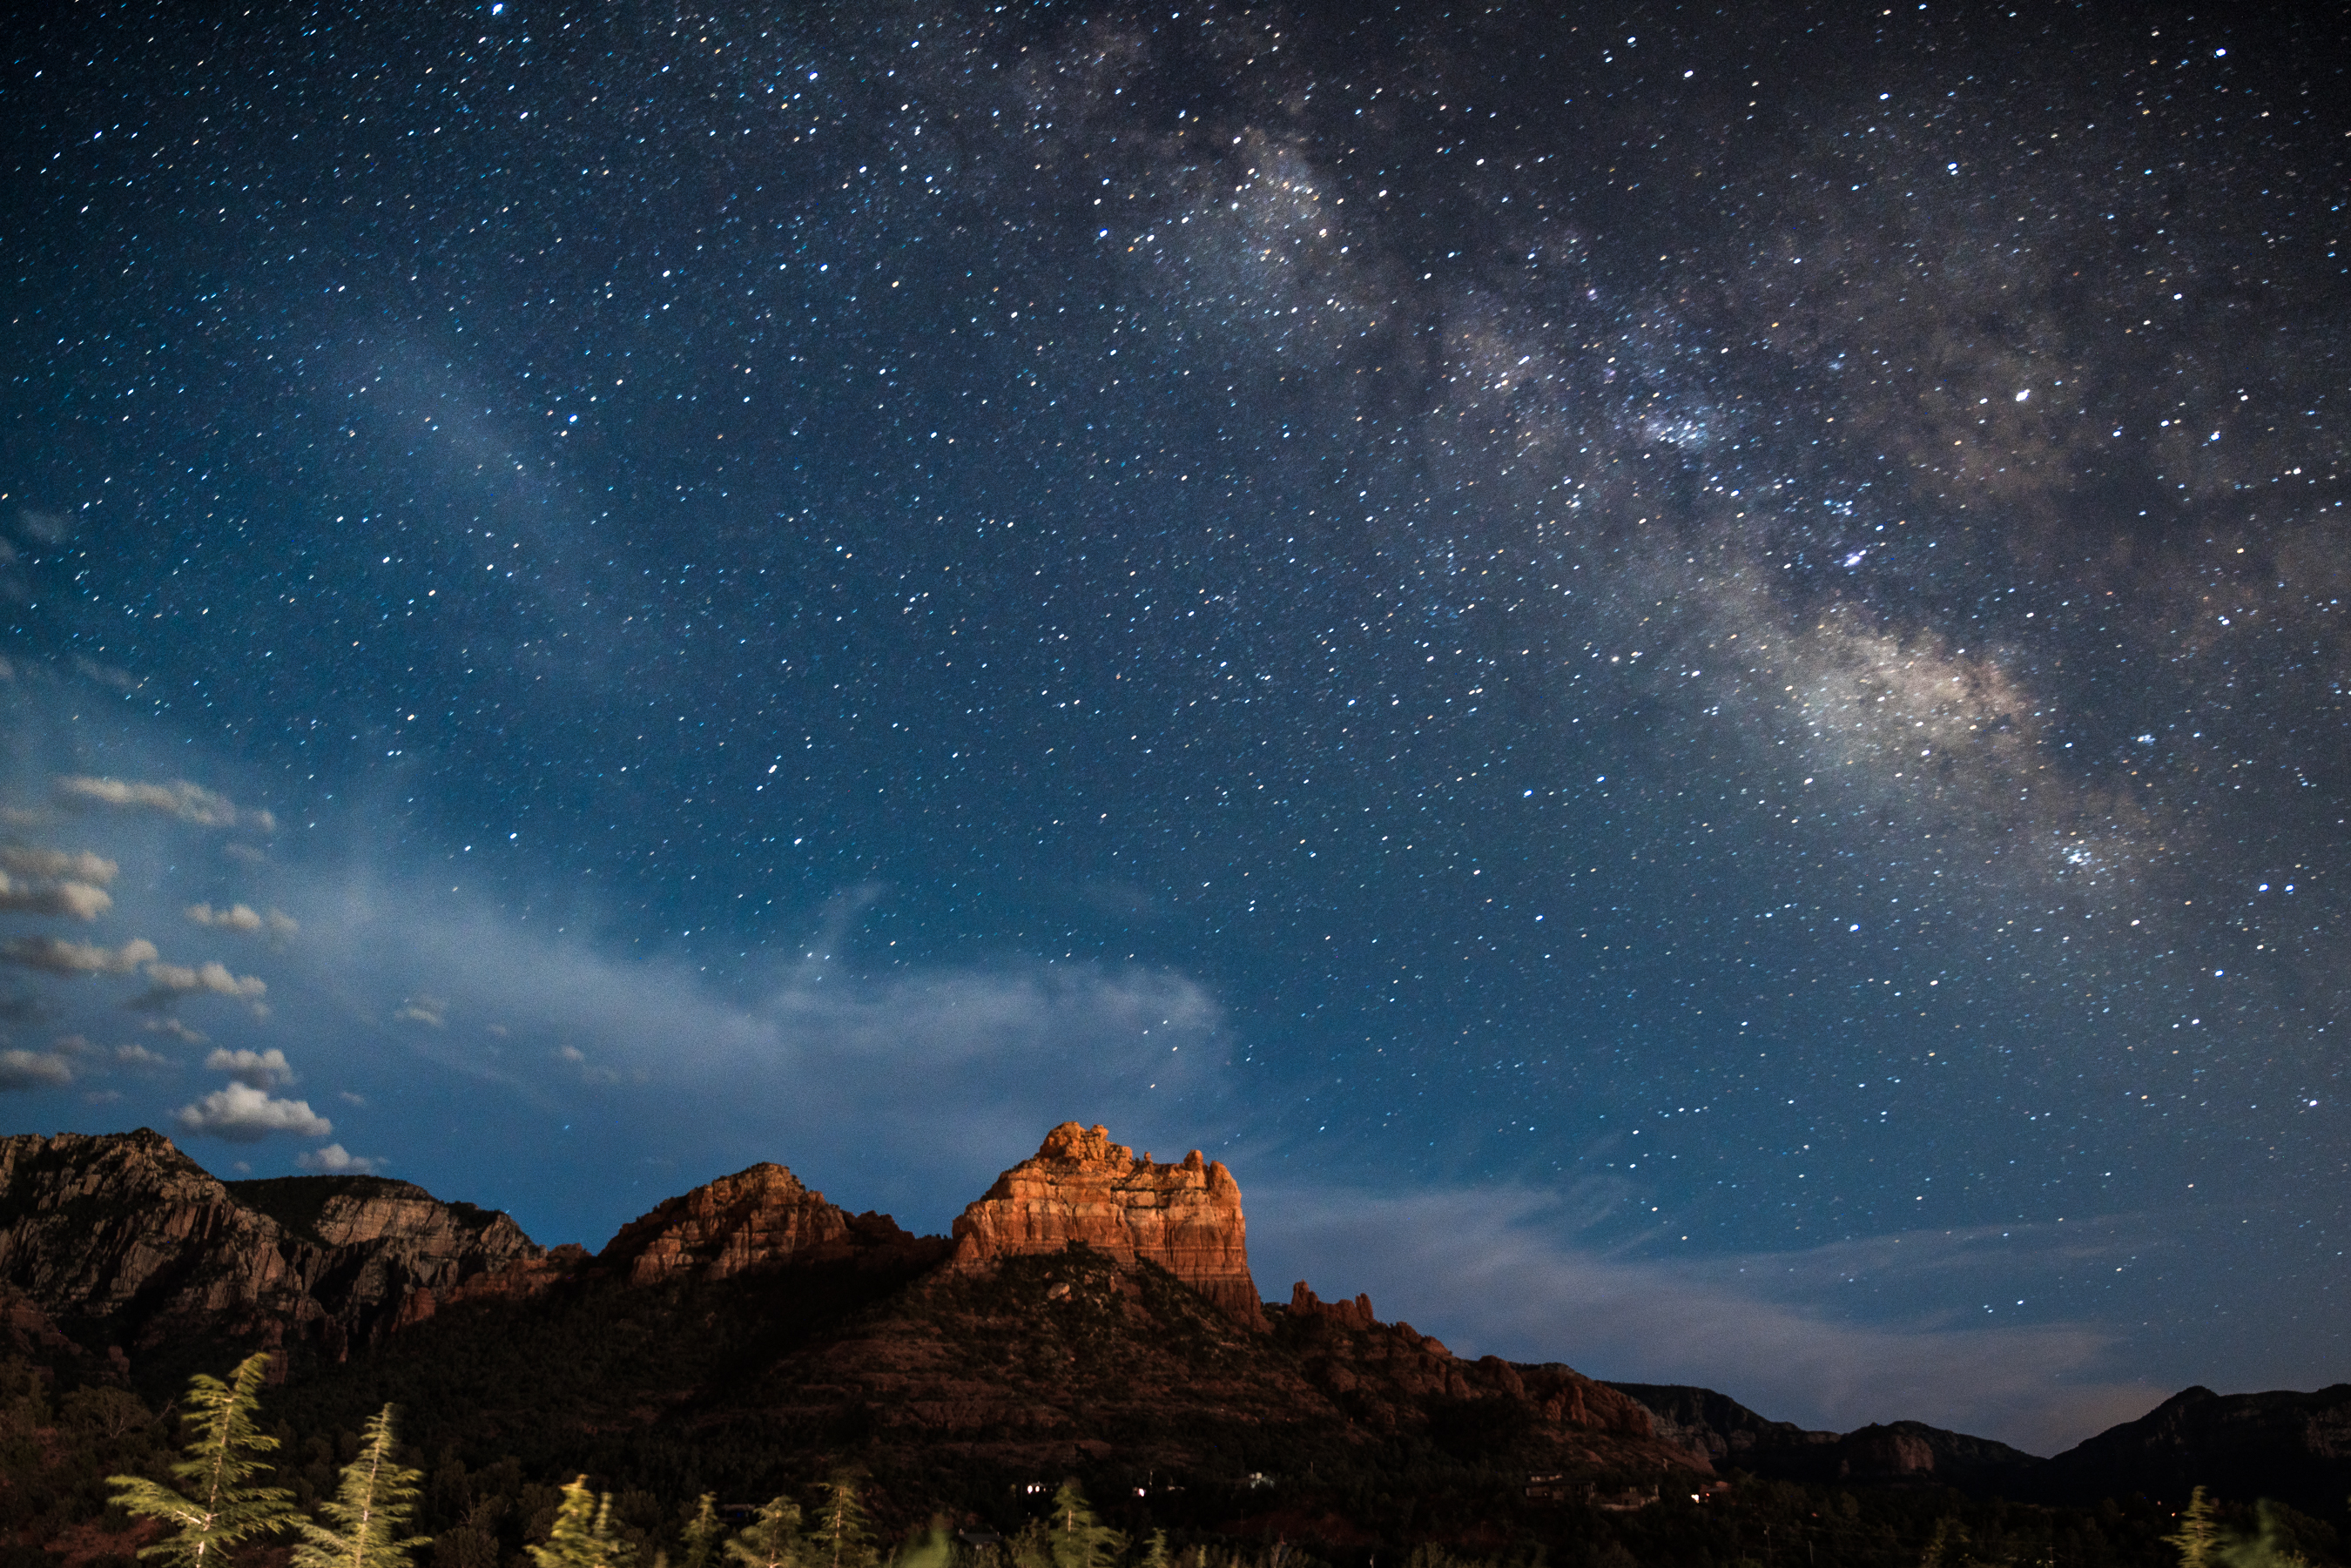 A starry night sky with mountains in the distance